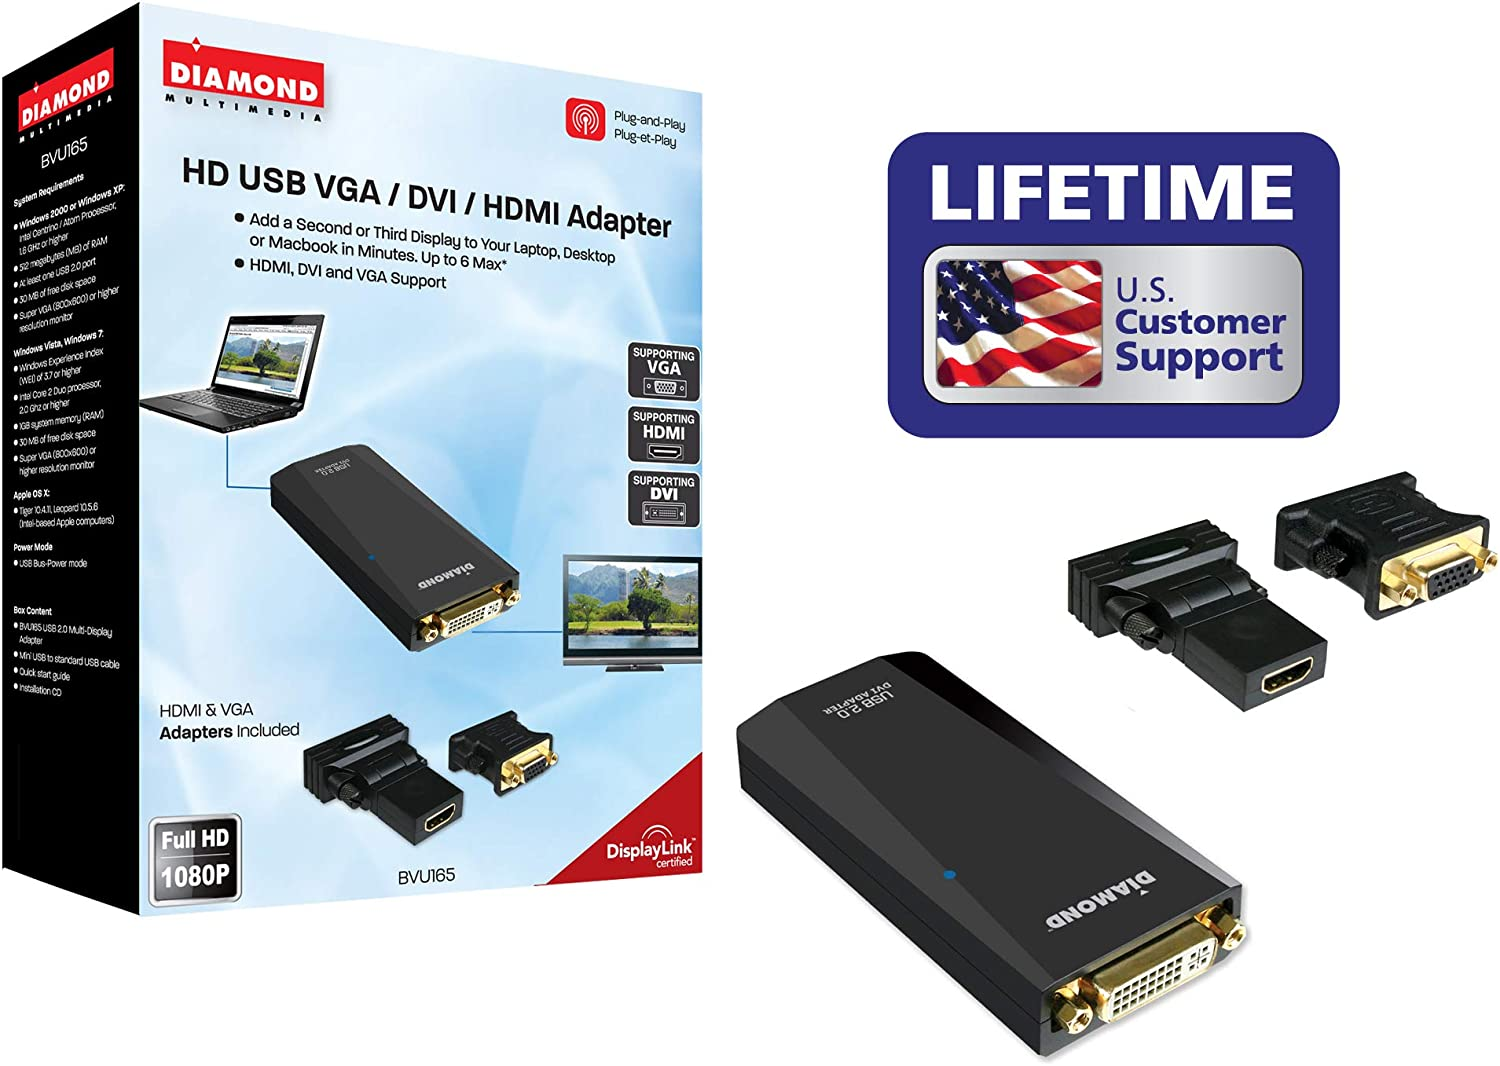 Diamond Multimedia USB 2.0 to VGA/DVI/HDMI Video Graphics Adapter up to 1920x1080 / 1600x1200 - Windows 10, 8.1, 8, 7, XP, MAC OS and Android 5.0 and Higher (BVU165LT)